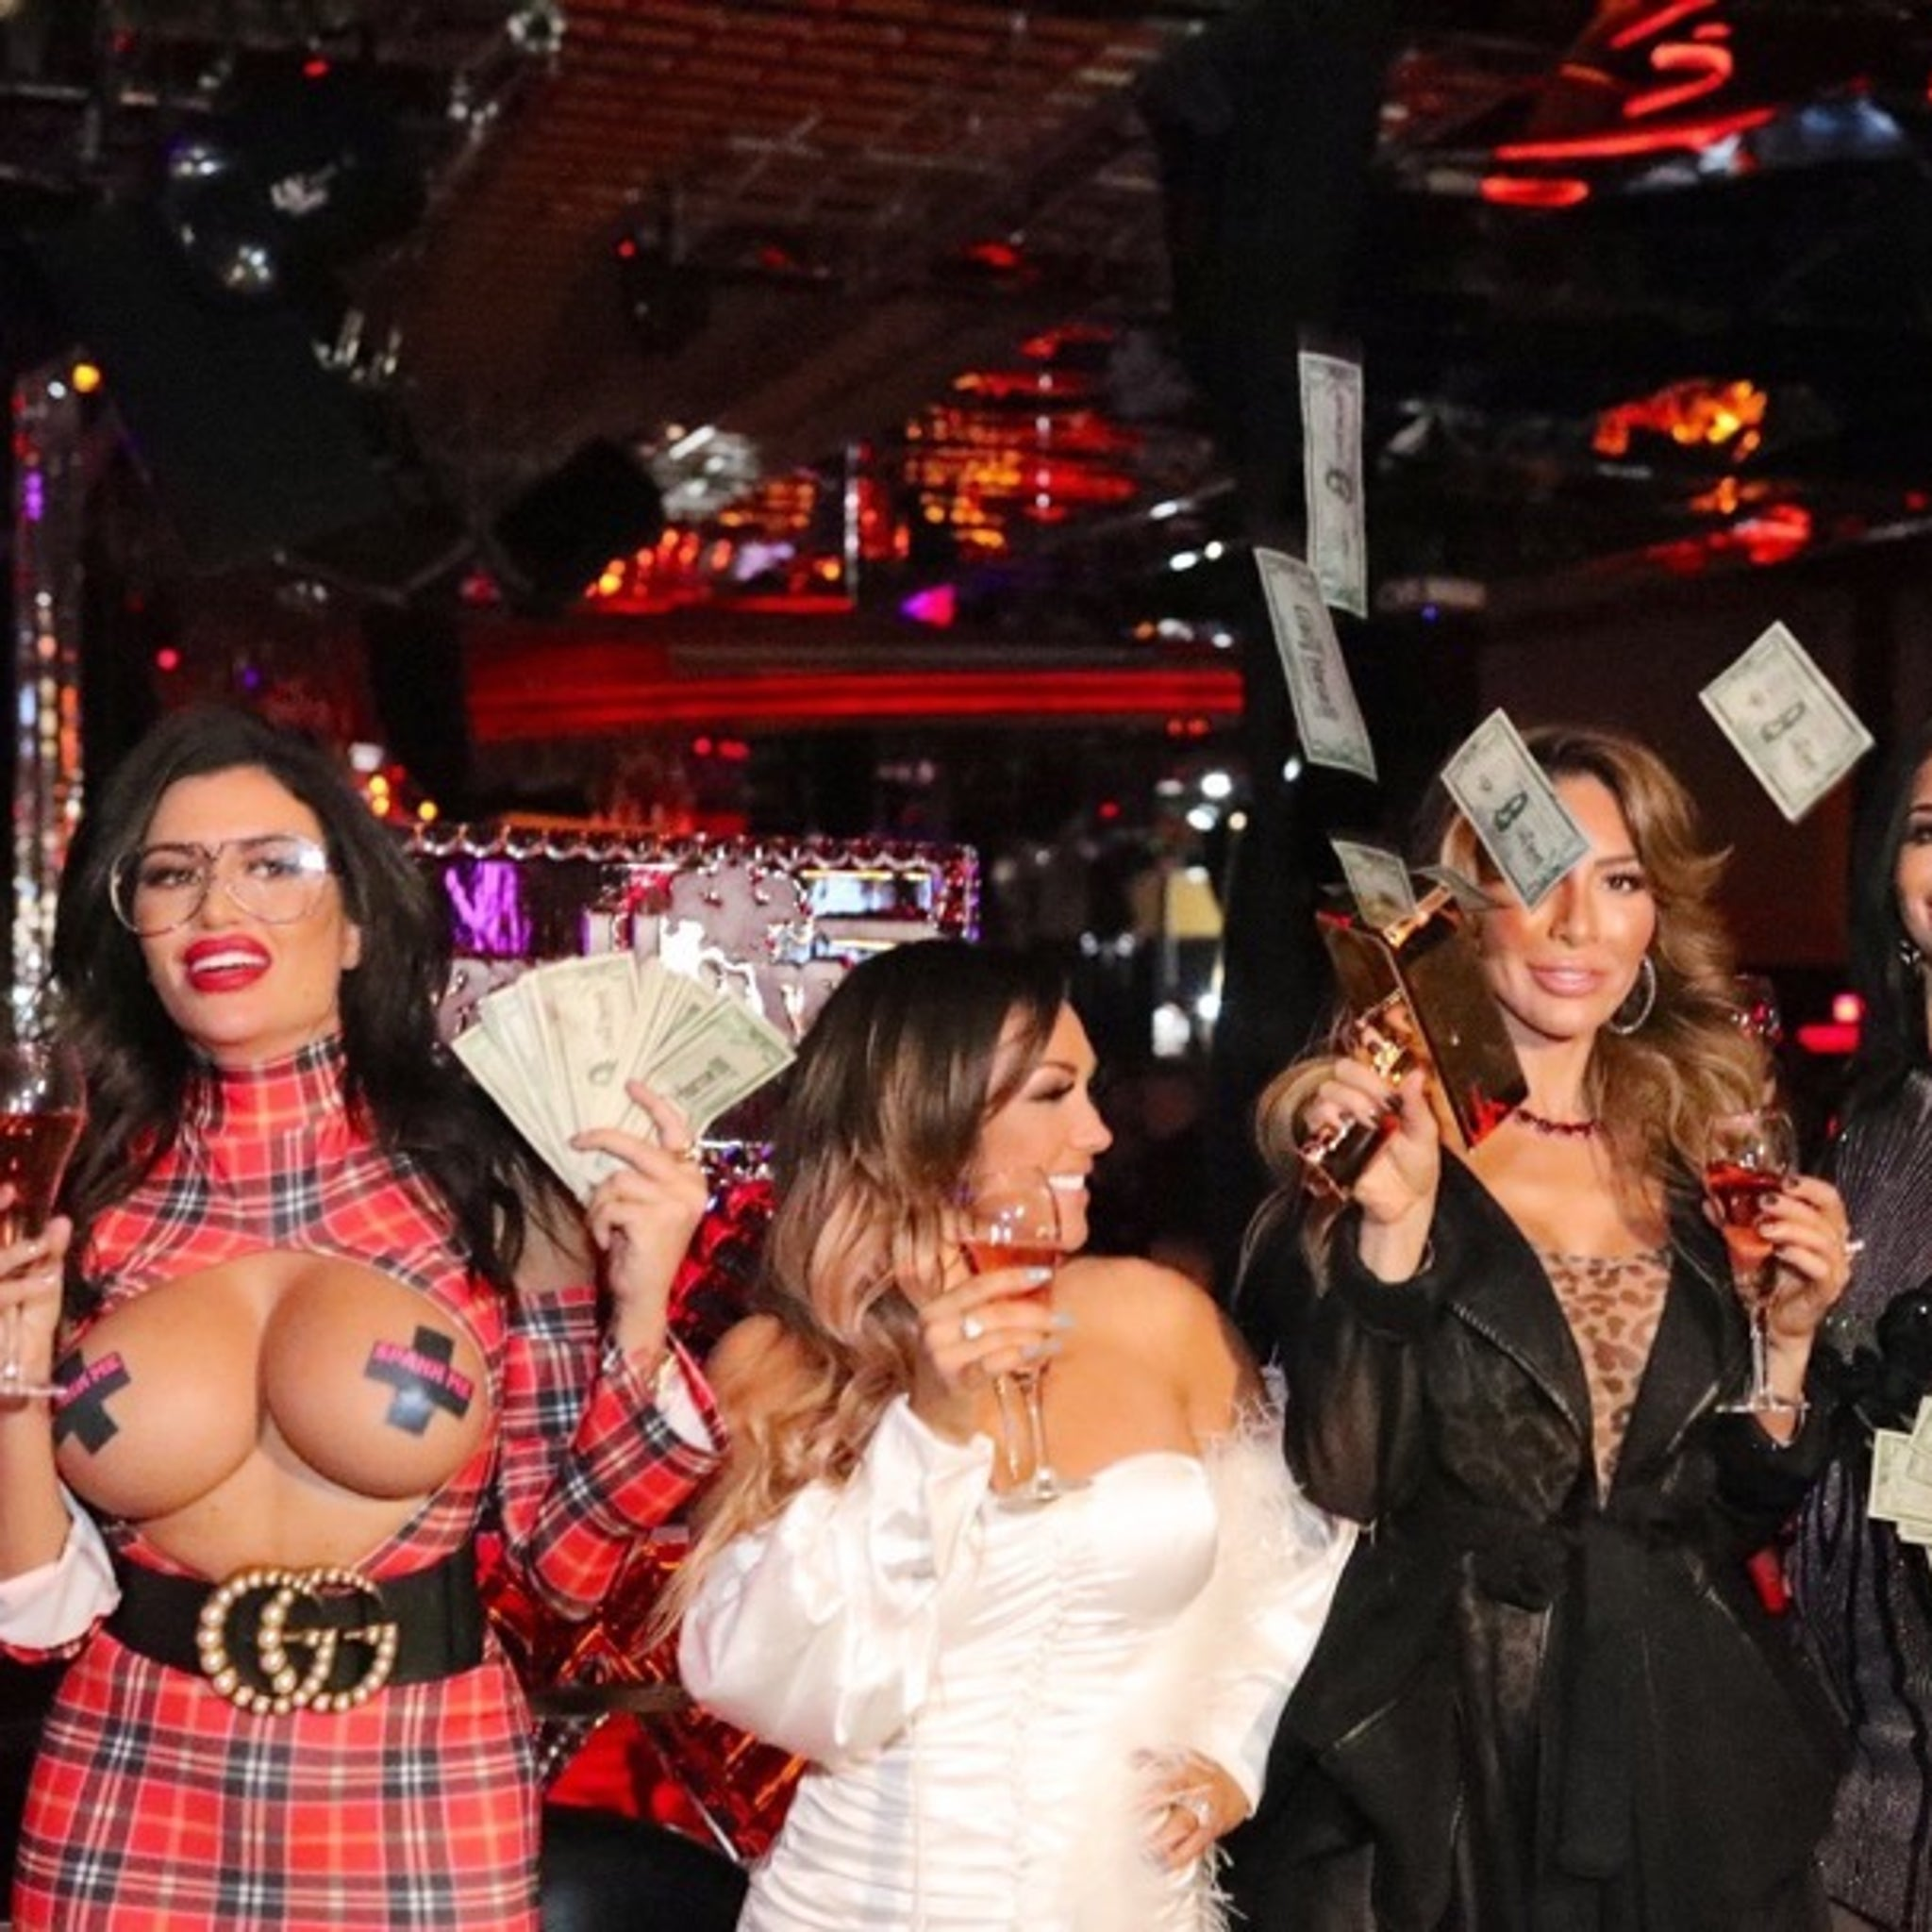 Jenn Harley and Farrah Abraham -- Getting Wild at Crazy Horse in Vegas